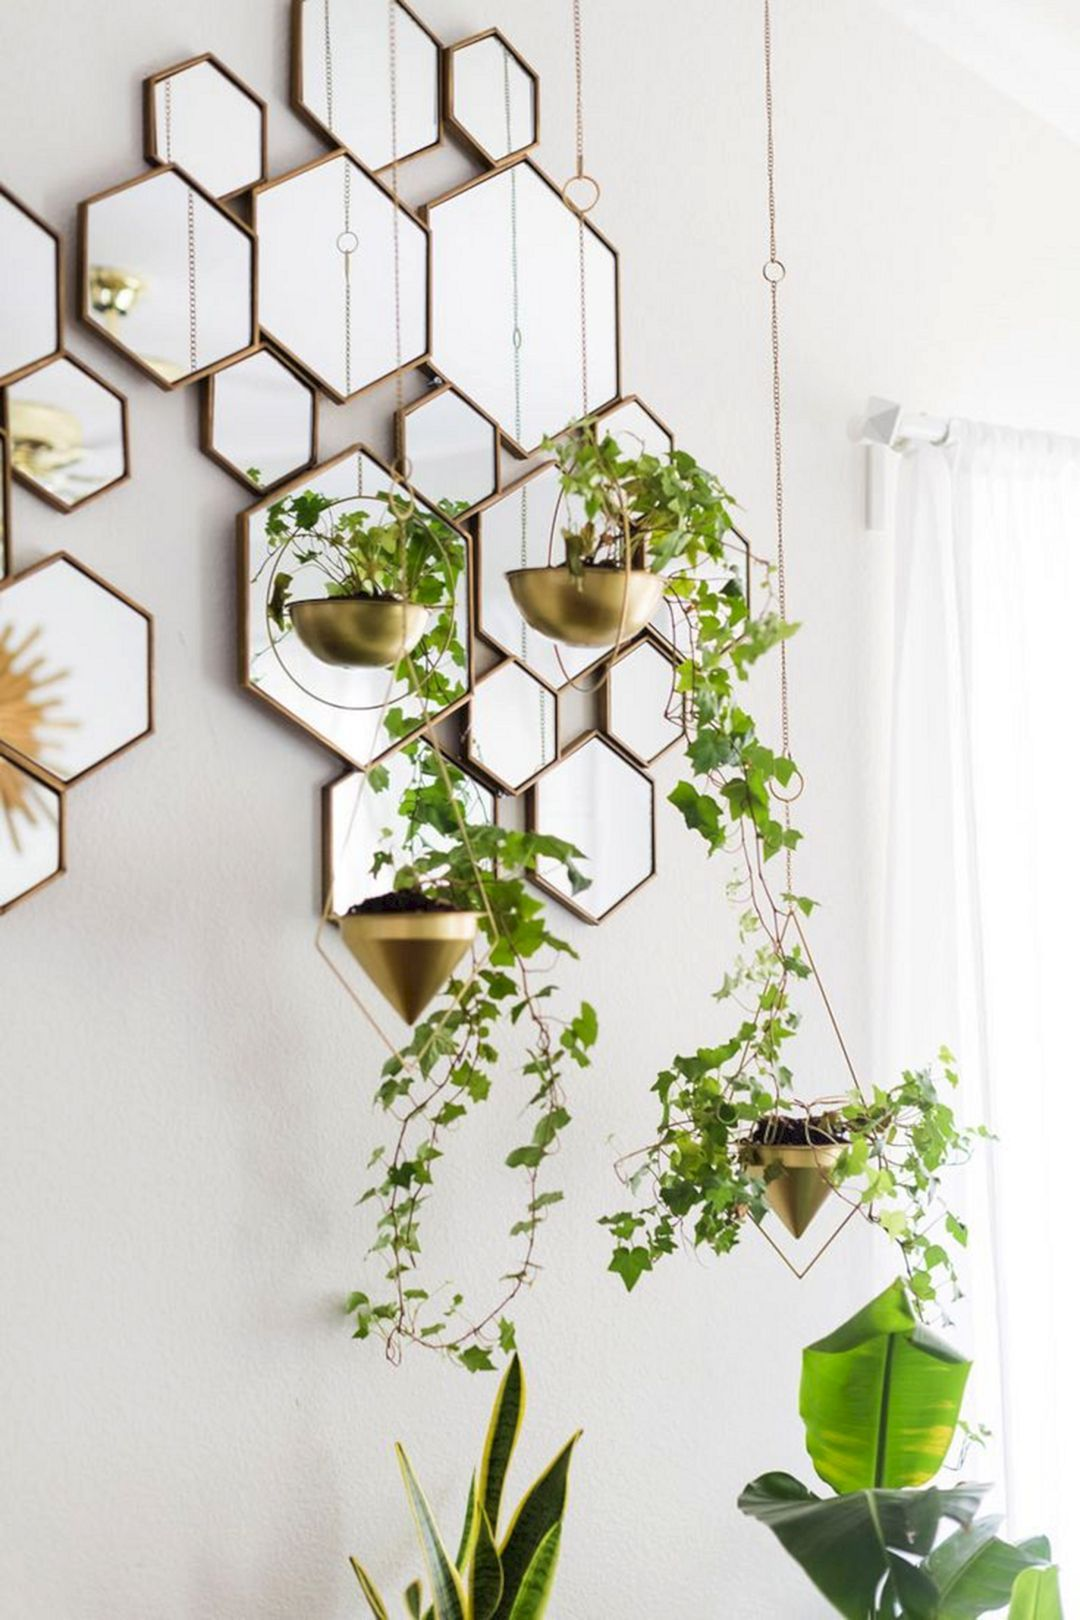 How to Use Living Room Wall Mirrors the Right Way_2 living room wall mirrors How to Use Living Room Wall Mirrors the Right Way How to Use Living Room Wall Mirrors the Right Way 8